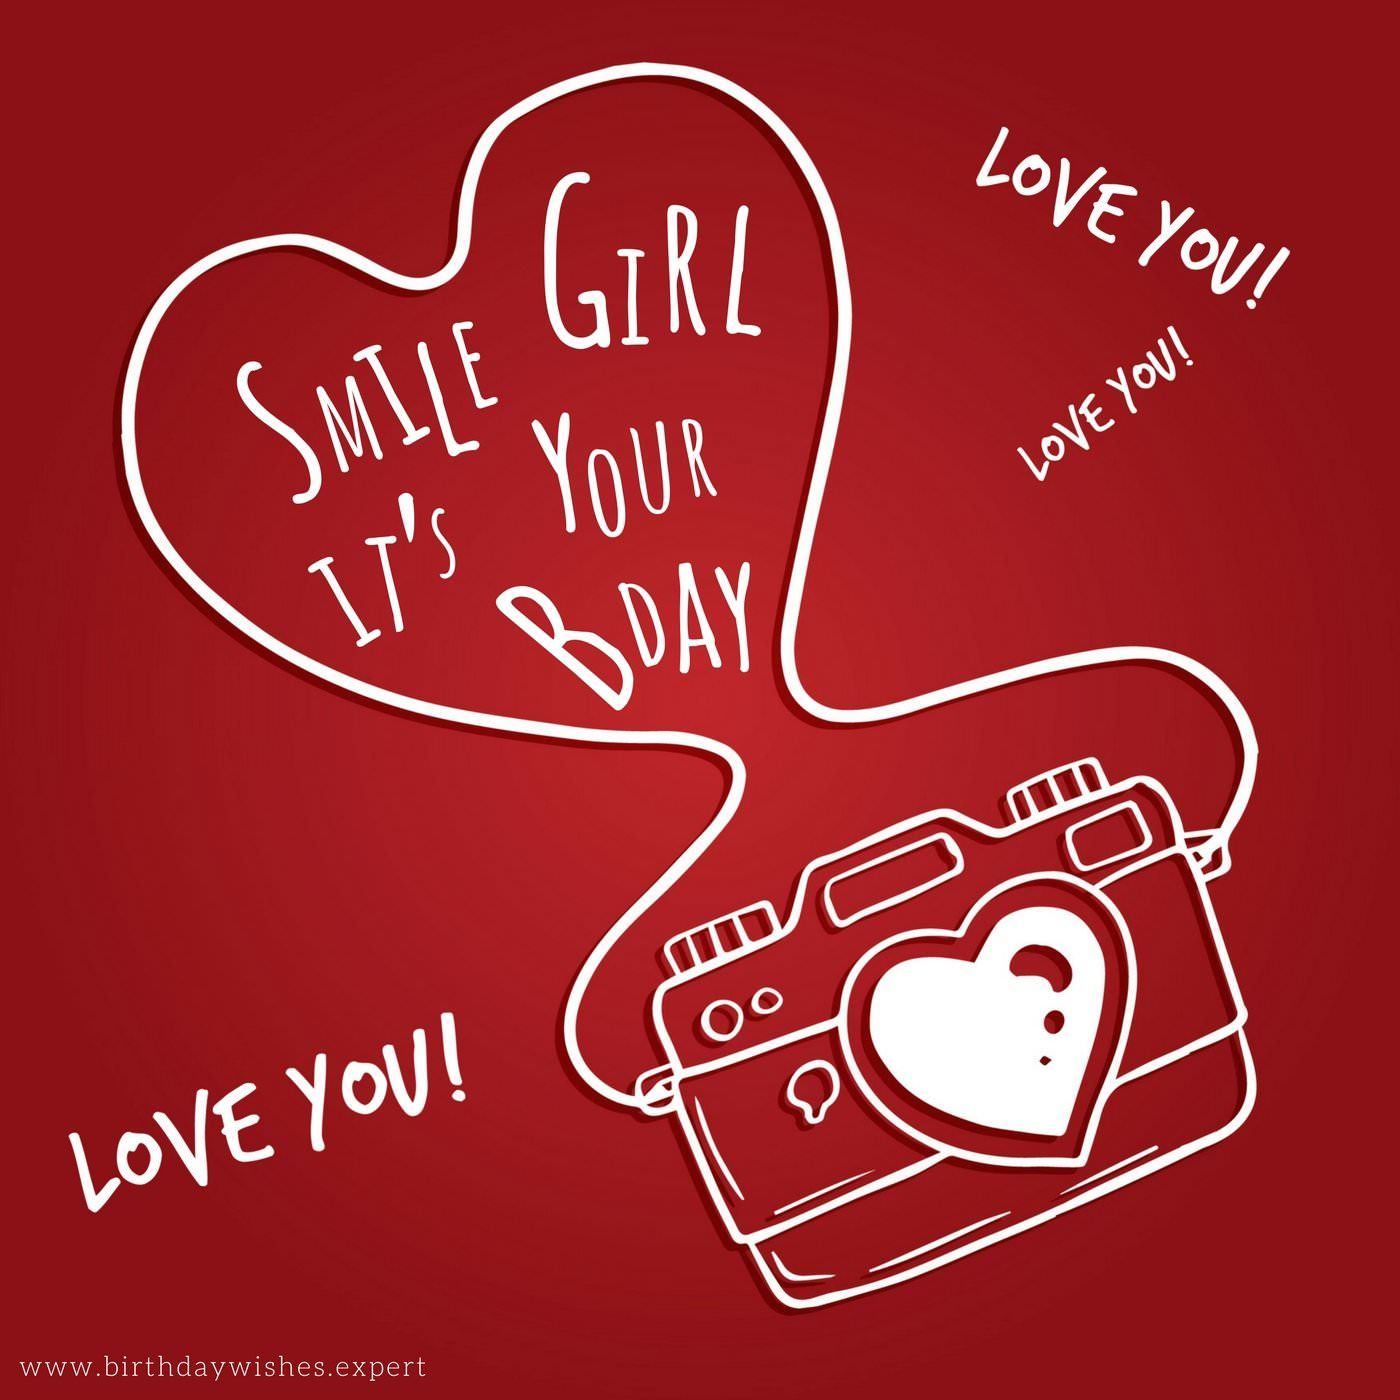 A Wish To Impress Her Greeting Card Pinterest Birthday Images